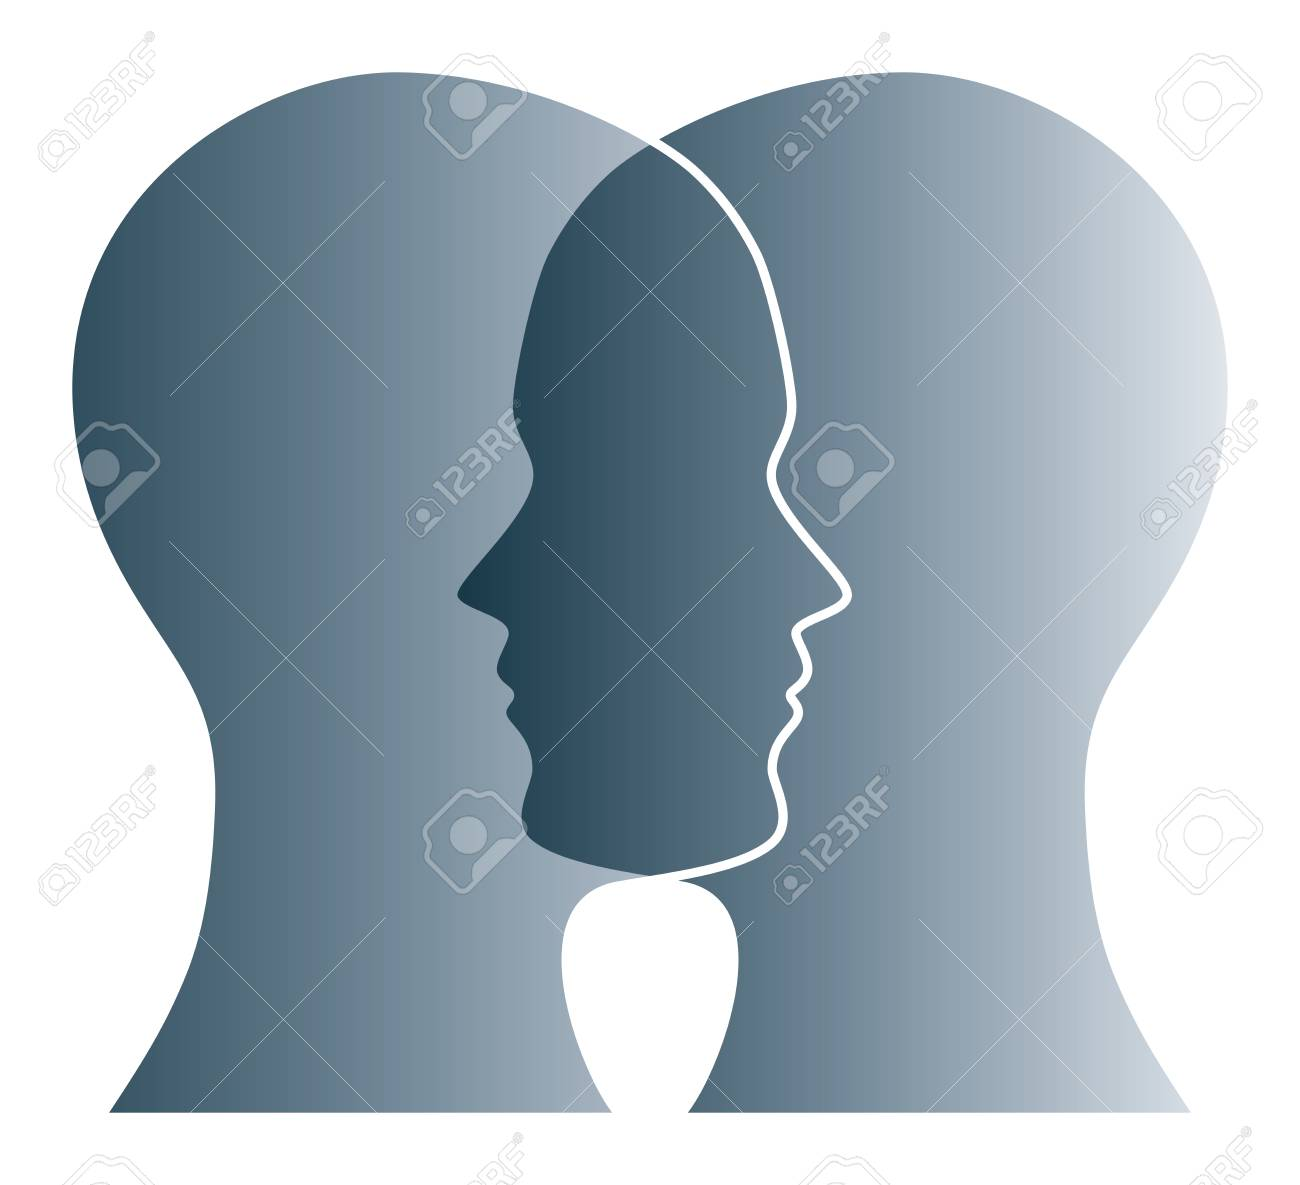 Gray silhouettes of two heads on white background. Two overlapping faces as symbol for anxiety, uncertainty, doubt and other psychological problems and questions. Isolated illustration. Vector. - 105481044